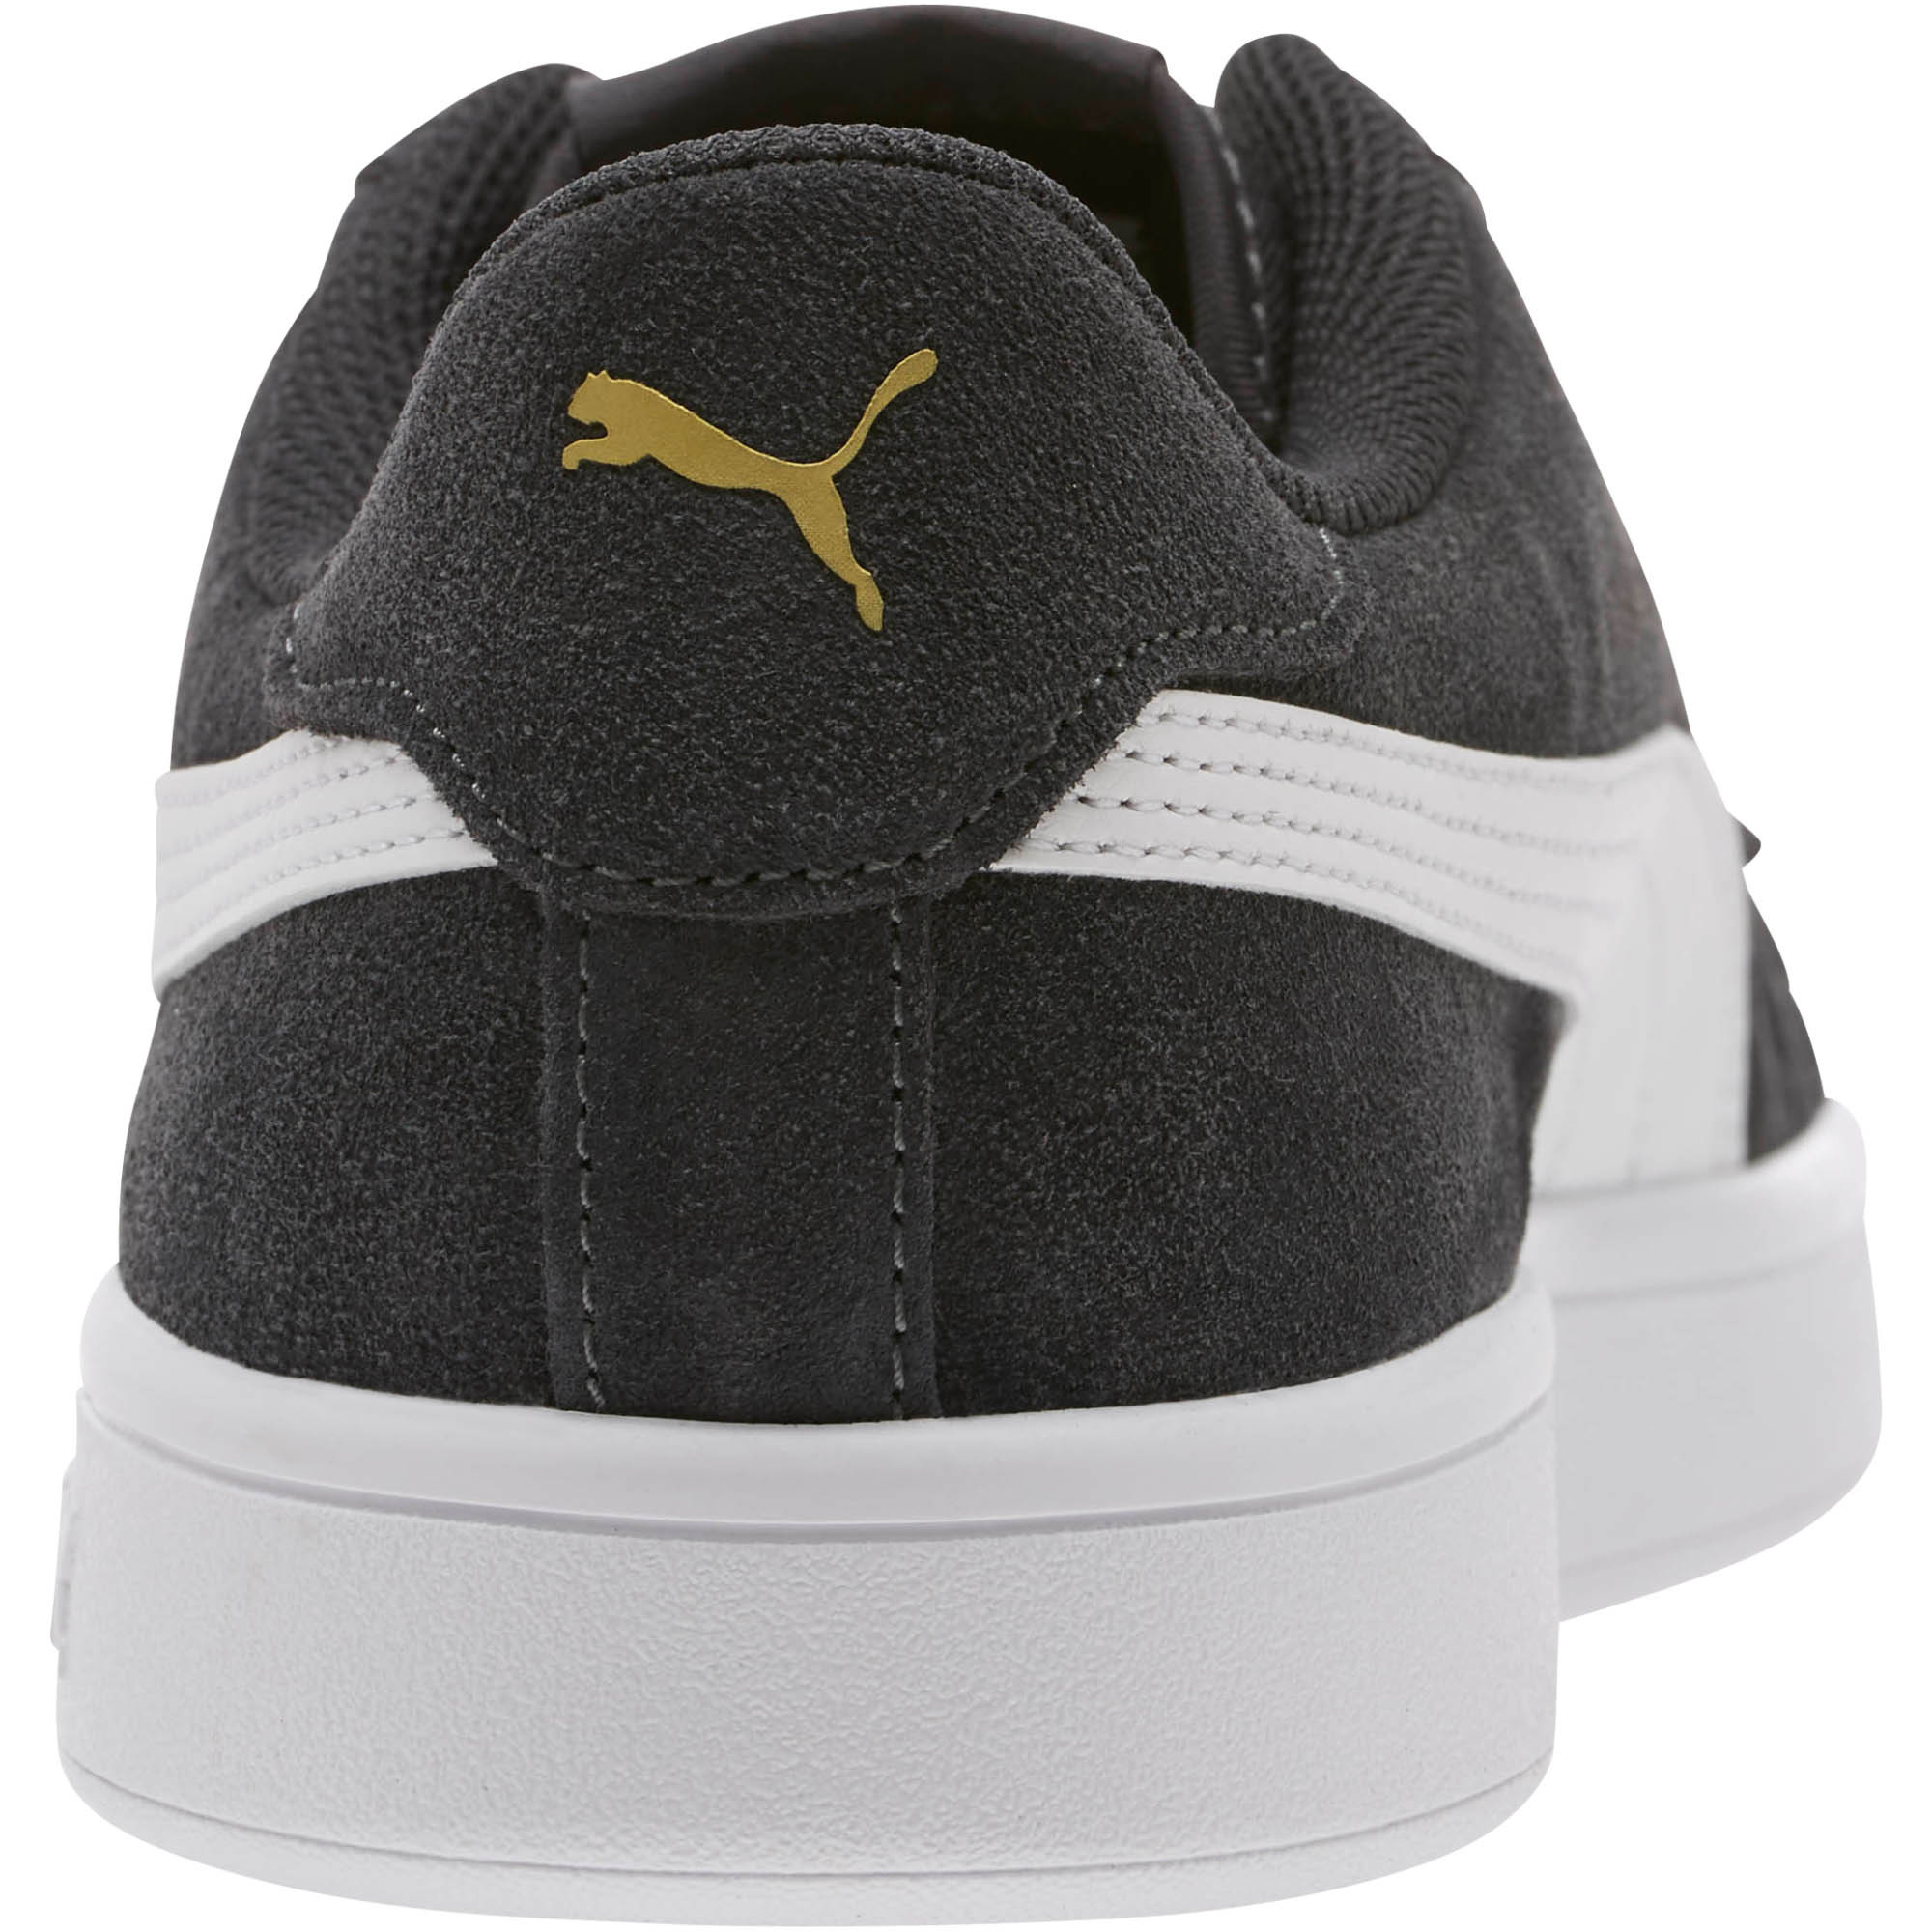 PUMA-PUMA-Smash-v2-Men-039-s-Sneakers-Men-Shoe-Basics thumbnail 34